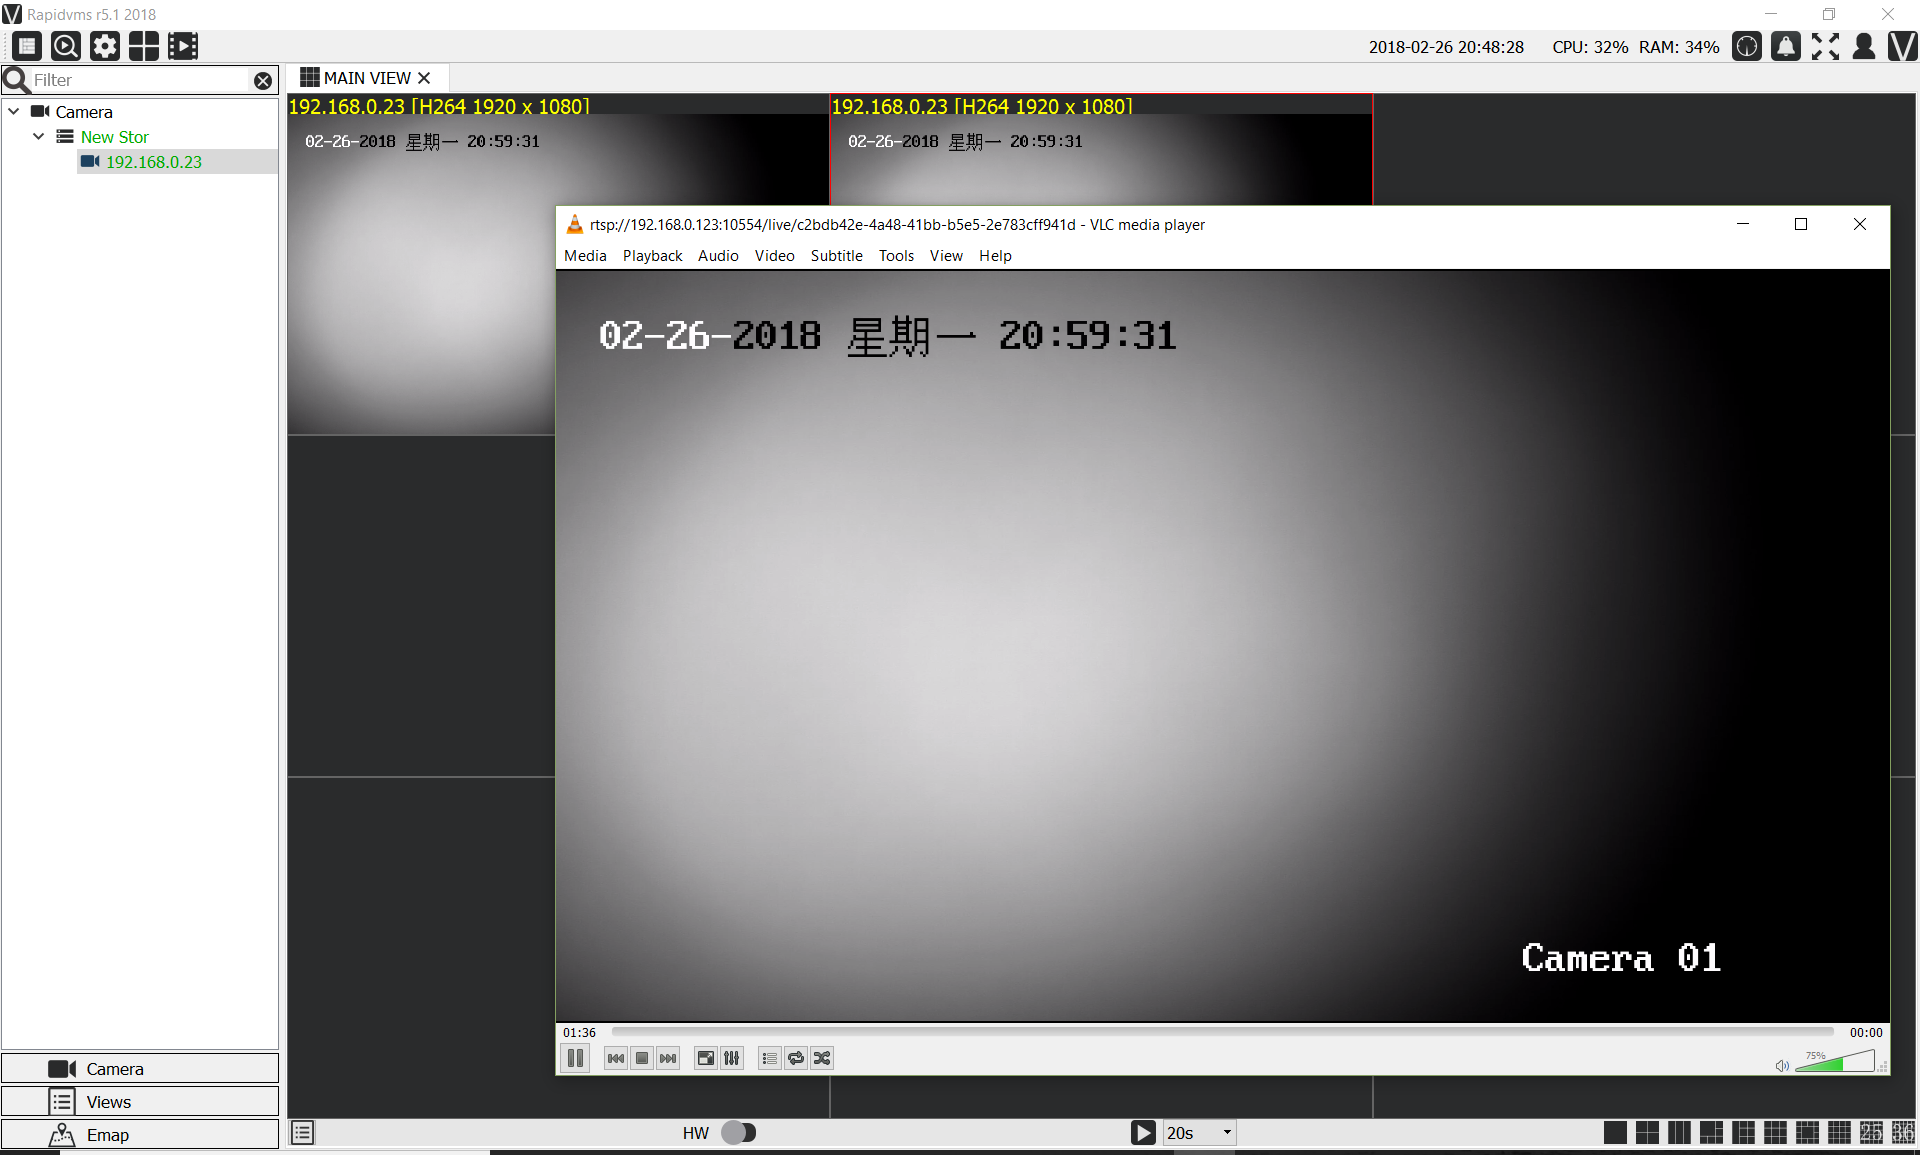 how to enable rapidvms as powserful RTSP RTMP HLS FLV streaming